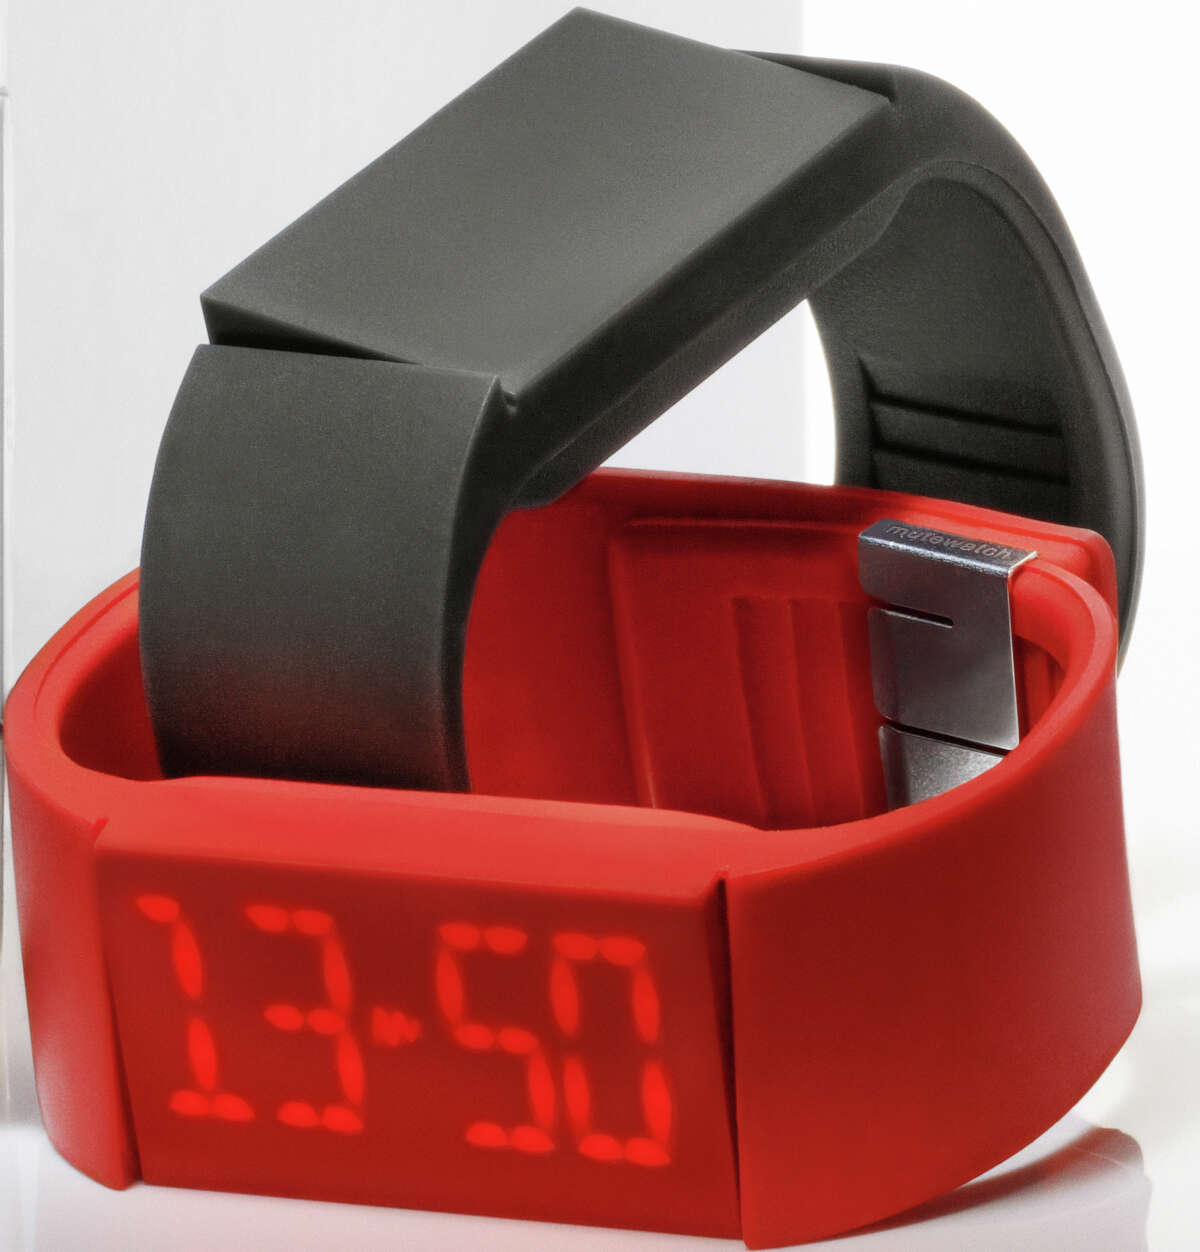 Mutewatch, a Swedish watch company, is expanding its availability through a partnership with Brookstone stores this month, including the Houston Galleria and Memorial City Mall locations. The slim touchscreen watch retails for $259 and comes in red, charcoal gray and black.